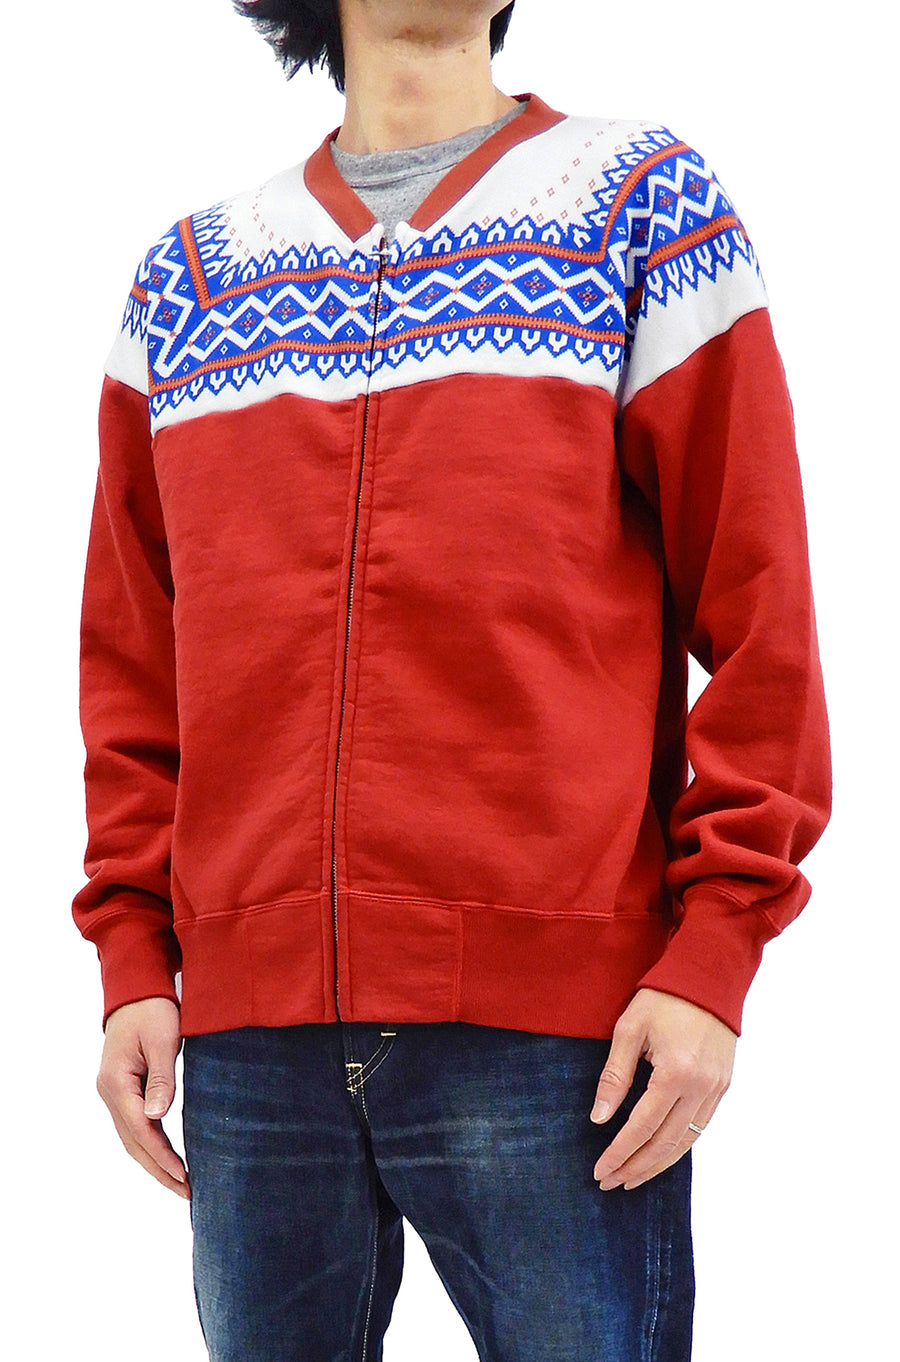 Whitesville Men's Zip-up Sweatshirt No Hood with Nordic Pattern Printed Panel WV68618 Red